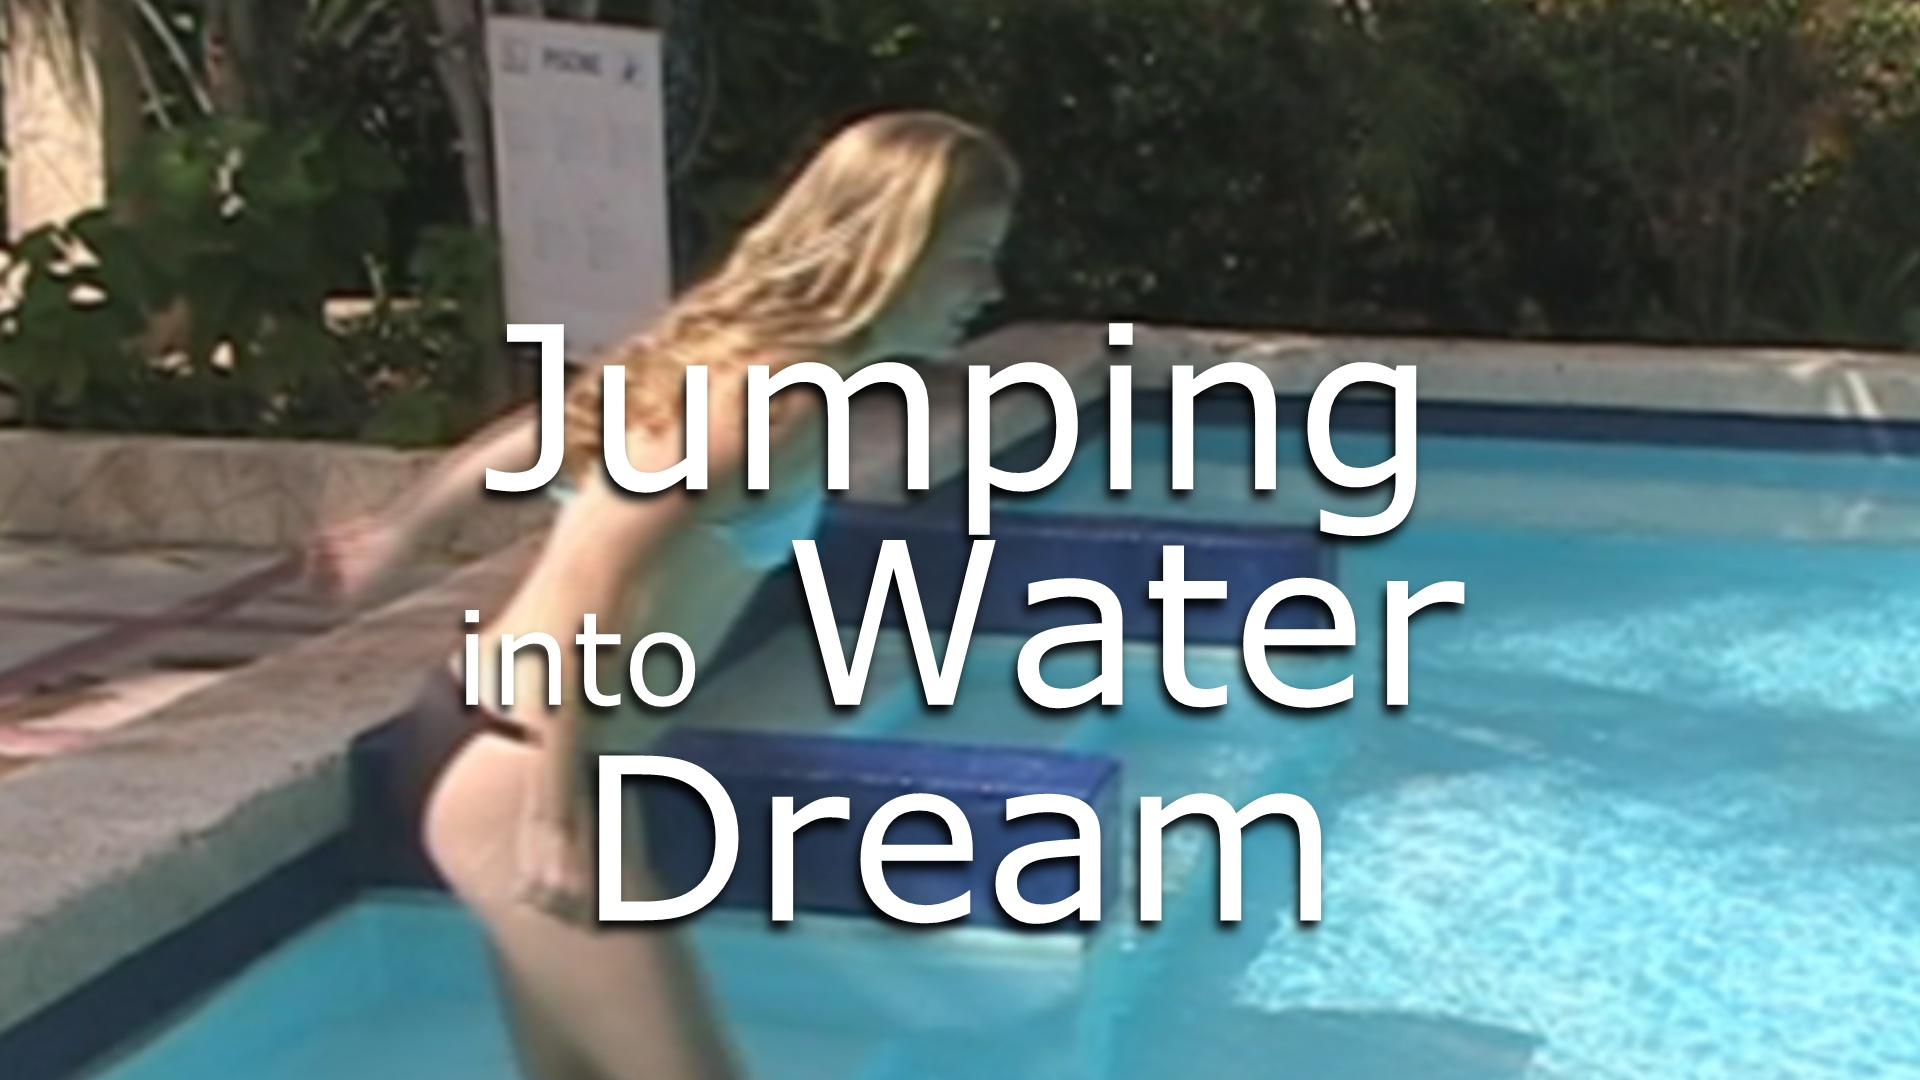 What does it mean when you dream about jumping into water